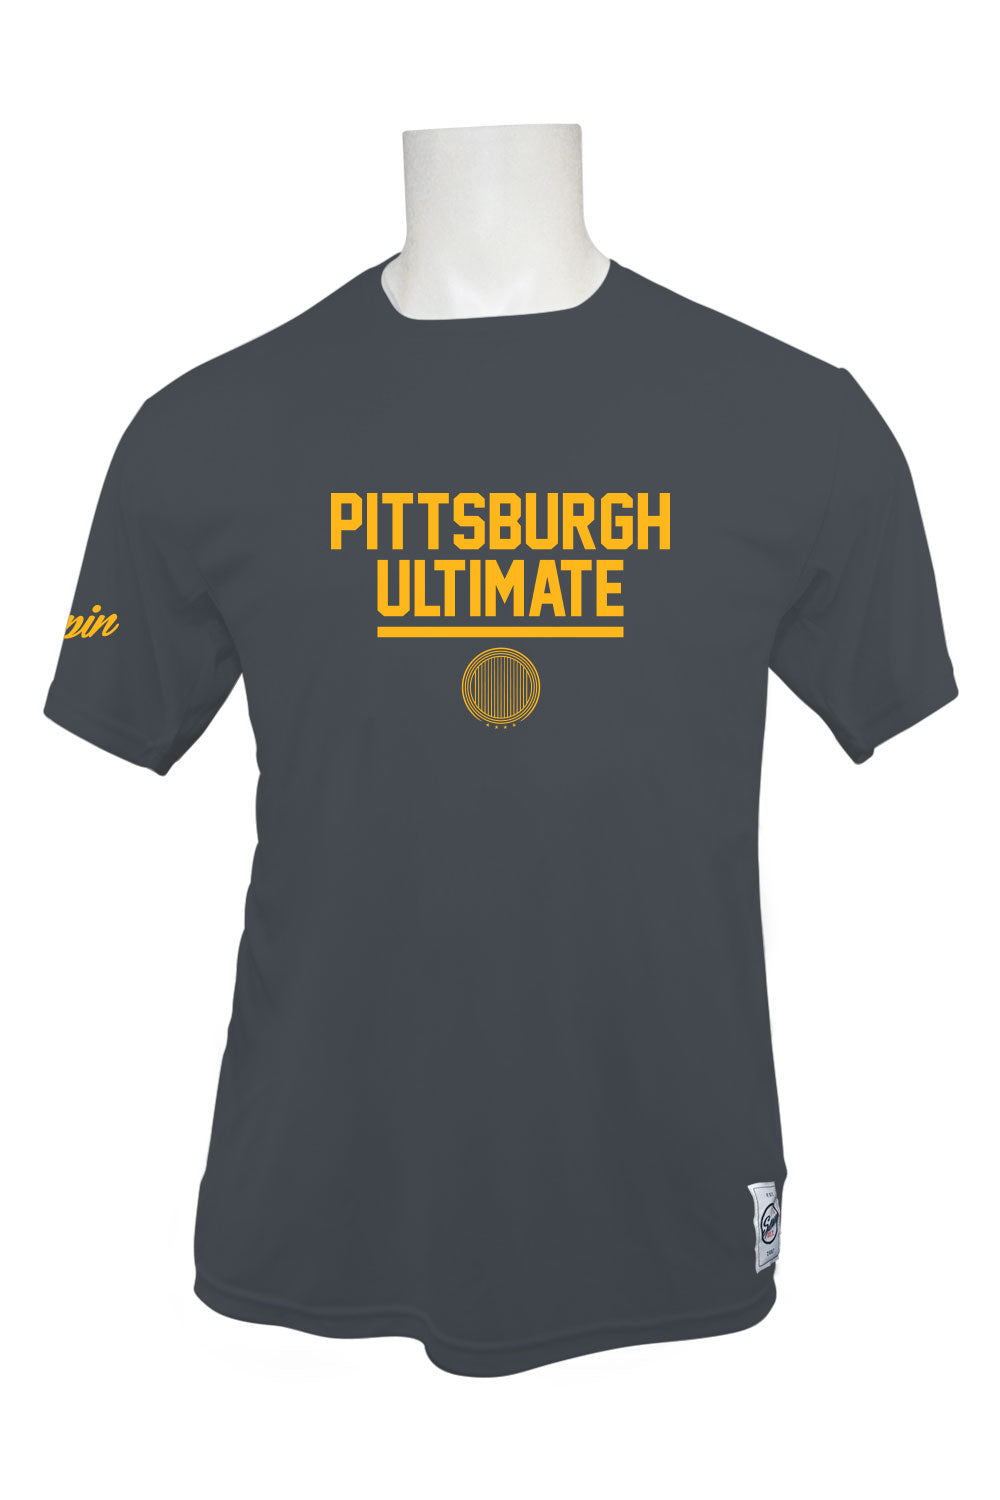 Pittsburgh Ultimate Short Sleeve Jersey (Charcoal)